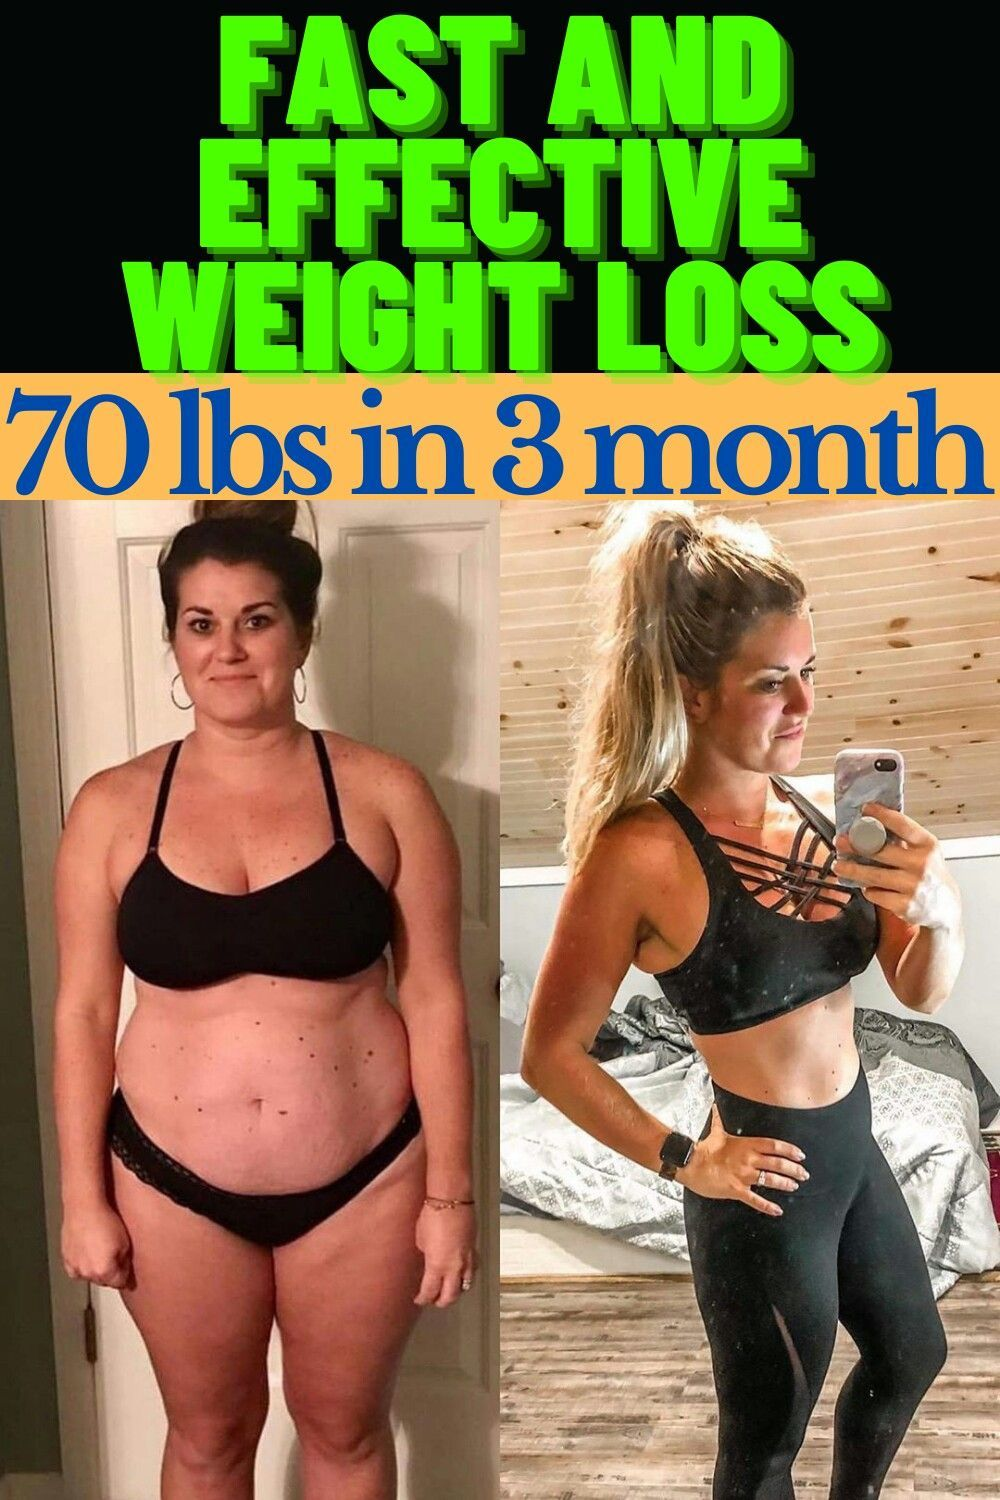 How To Lose Weight Without Exercise Fast. Fast And Effective Weight Loss 70 Lbs In 3 Months